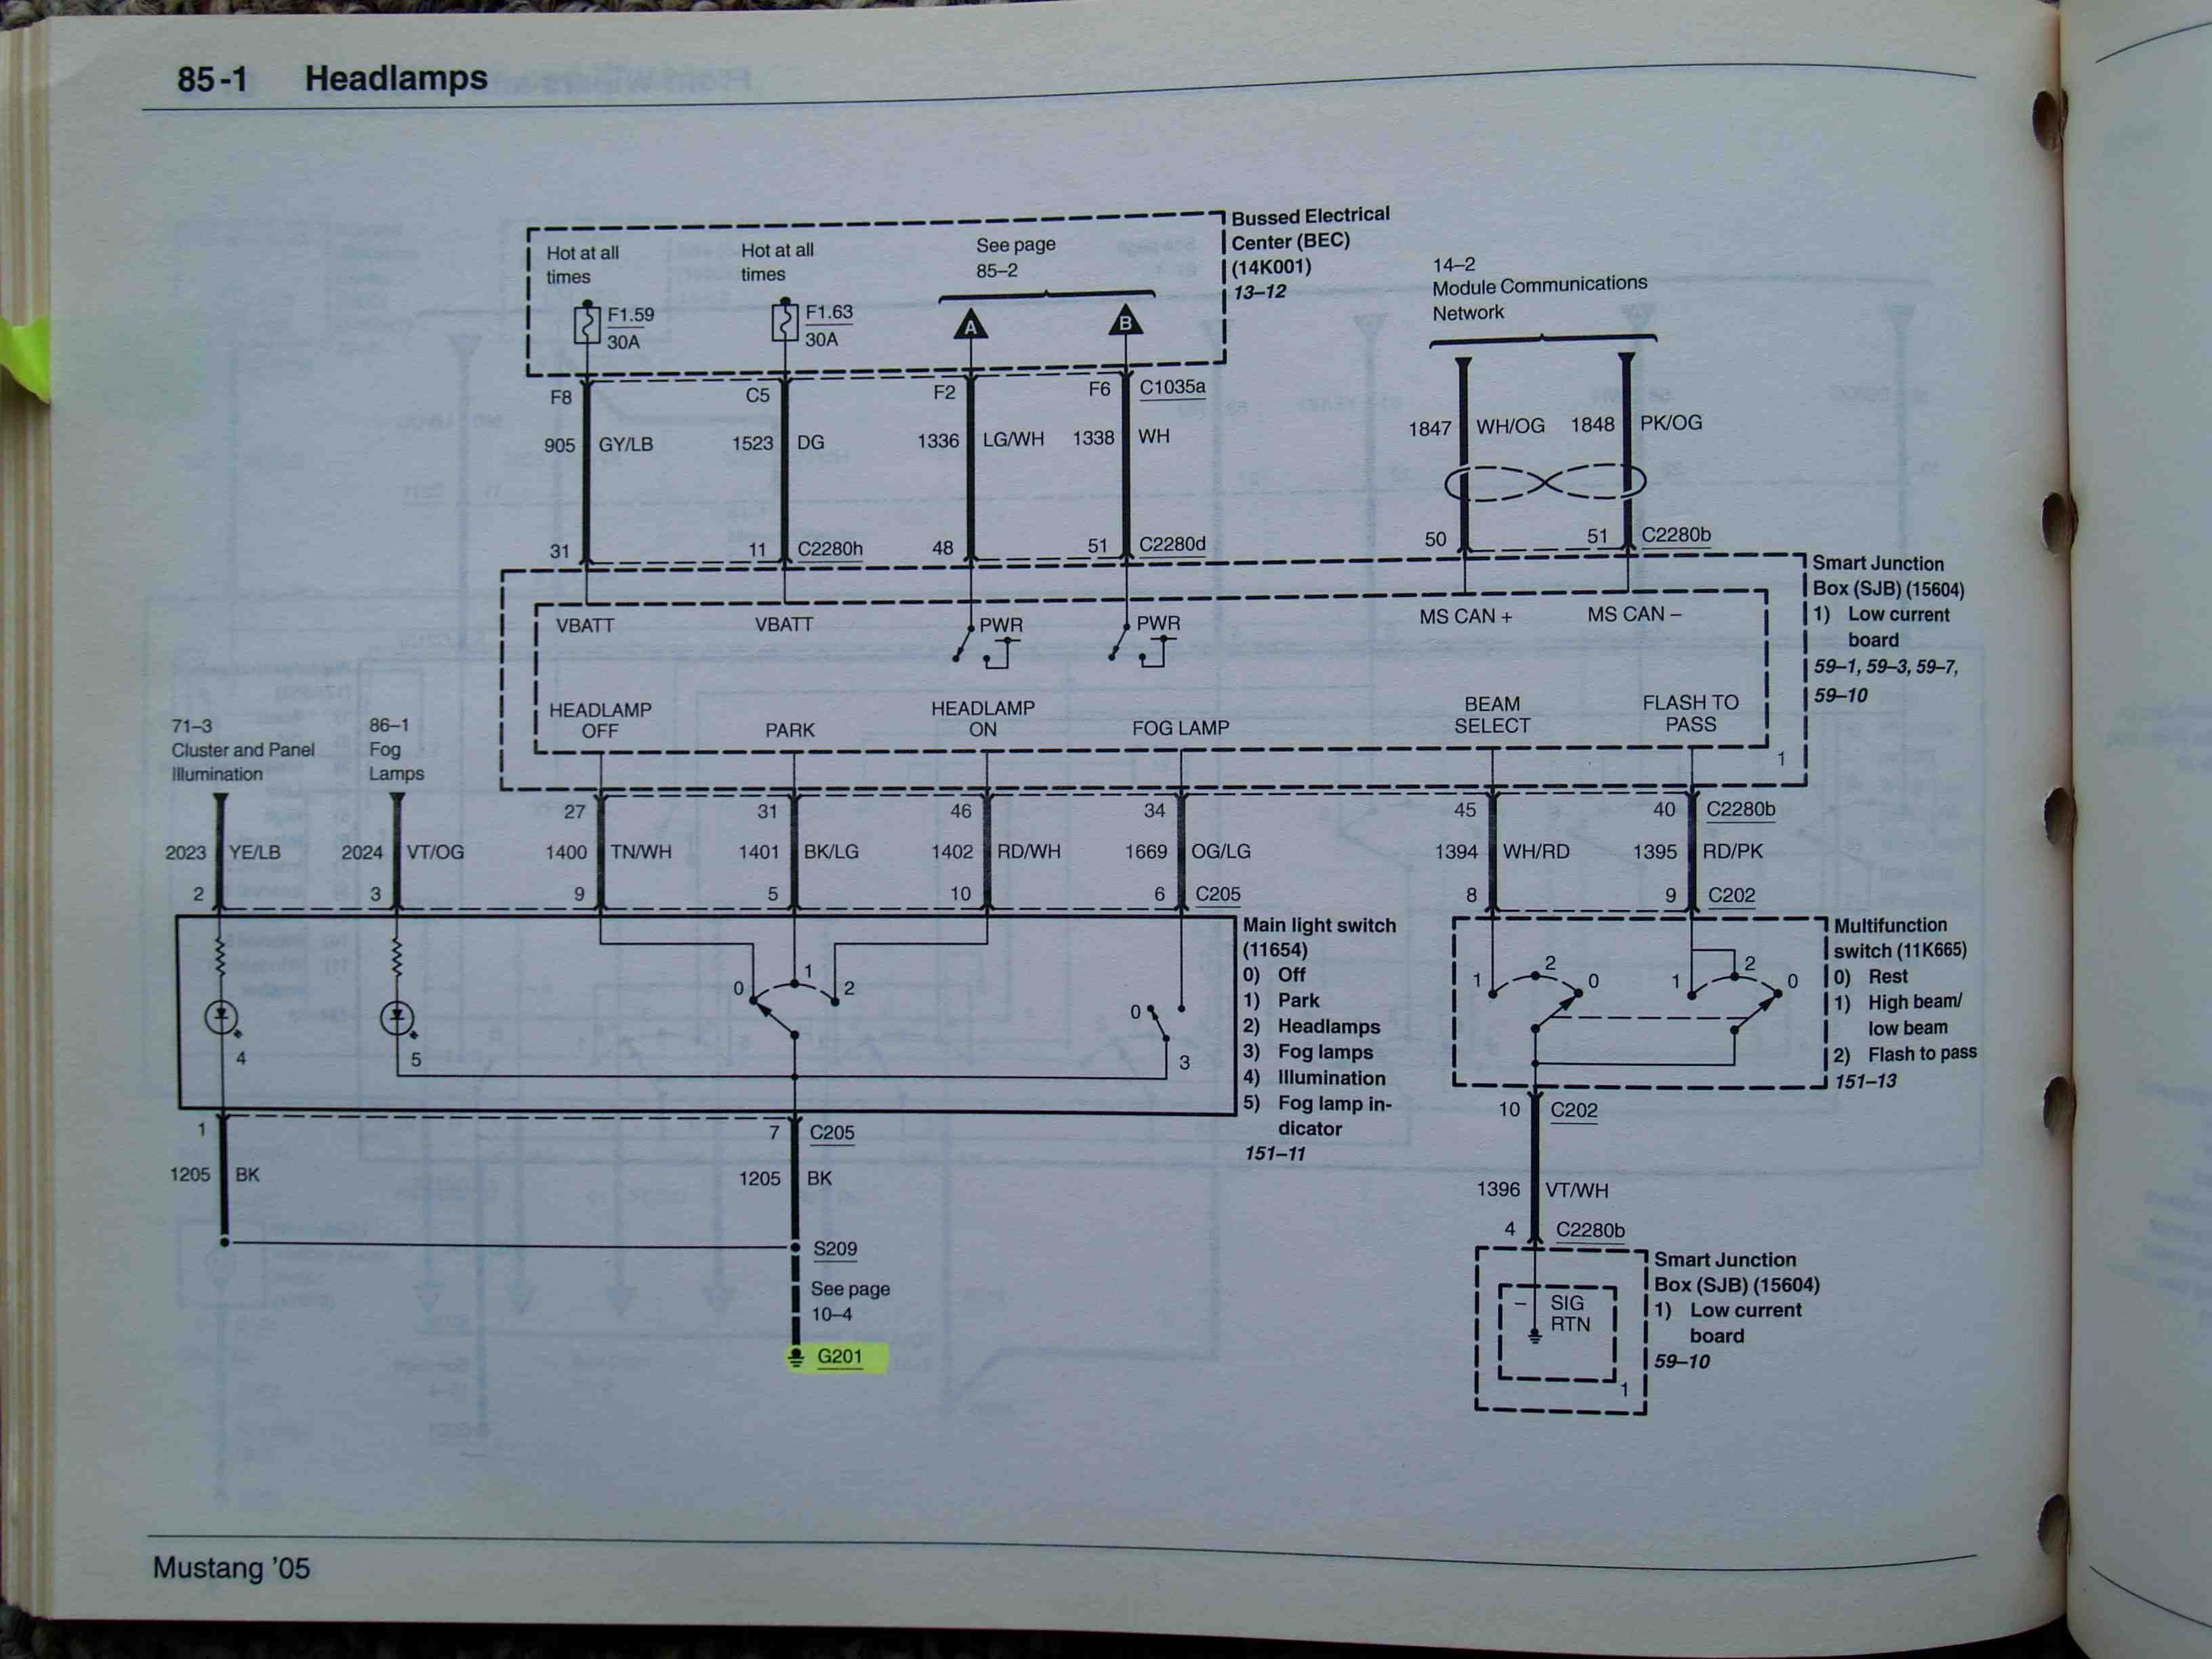 2006 mustang headlight wiring diagram just wiring data 90 mustang wiring diagrams 2006 mustang headlight wiring diagram